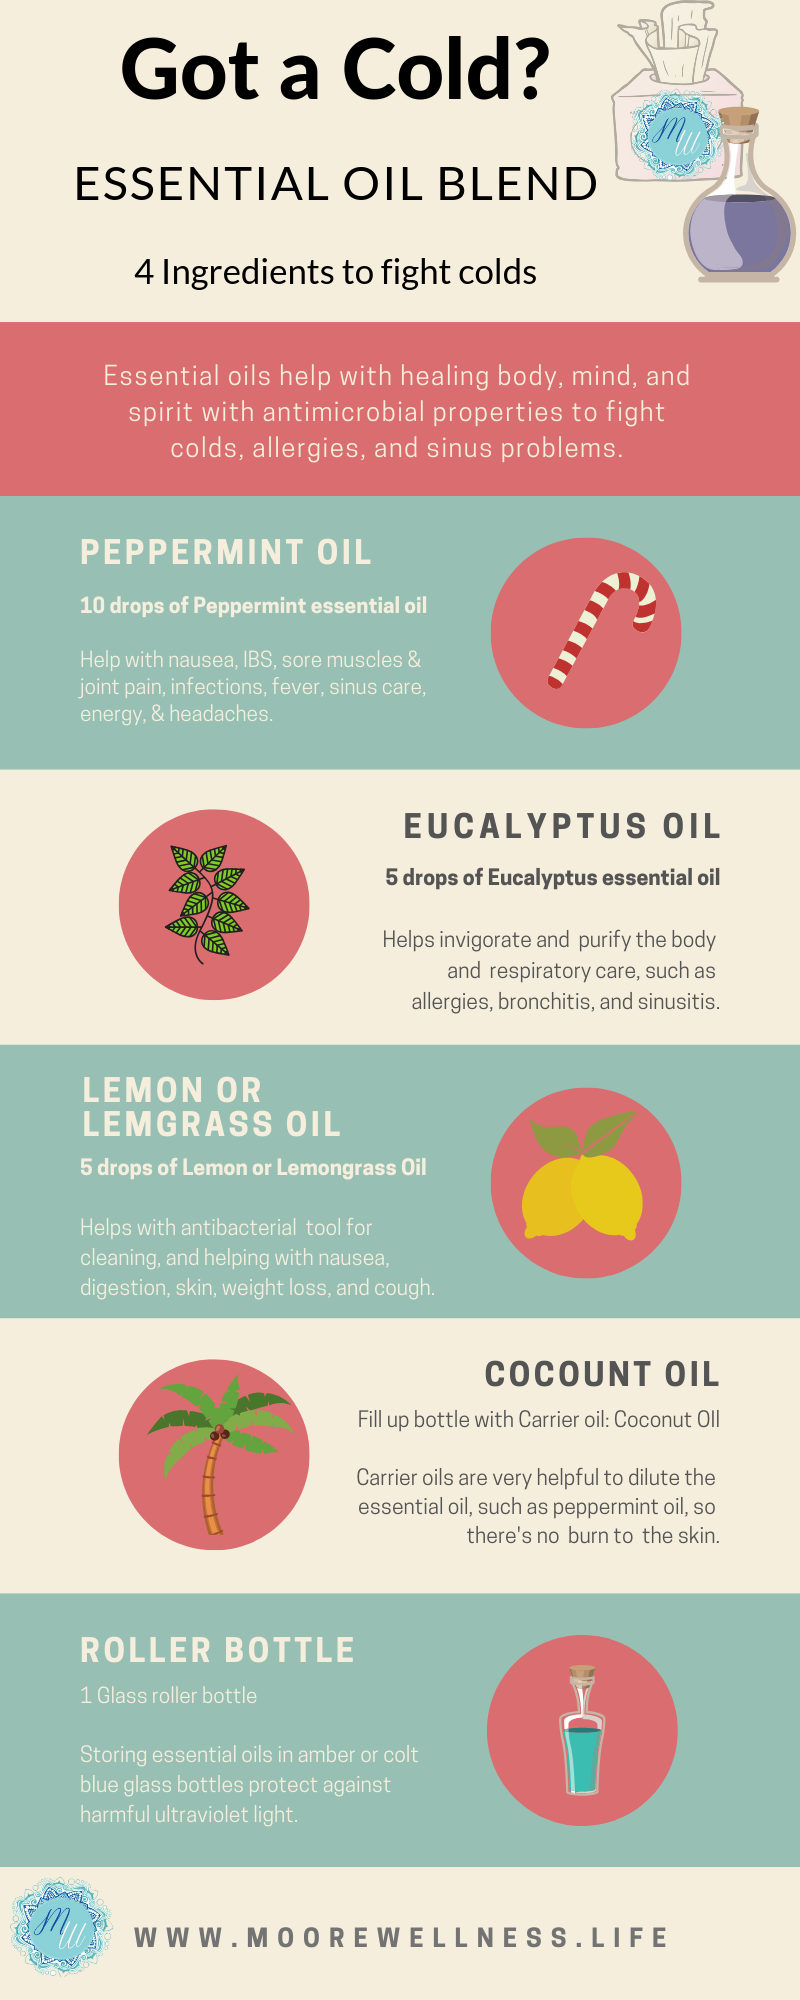 Countdown Top 10 Natural Home Remedies: Fight Colds and